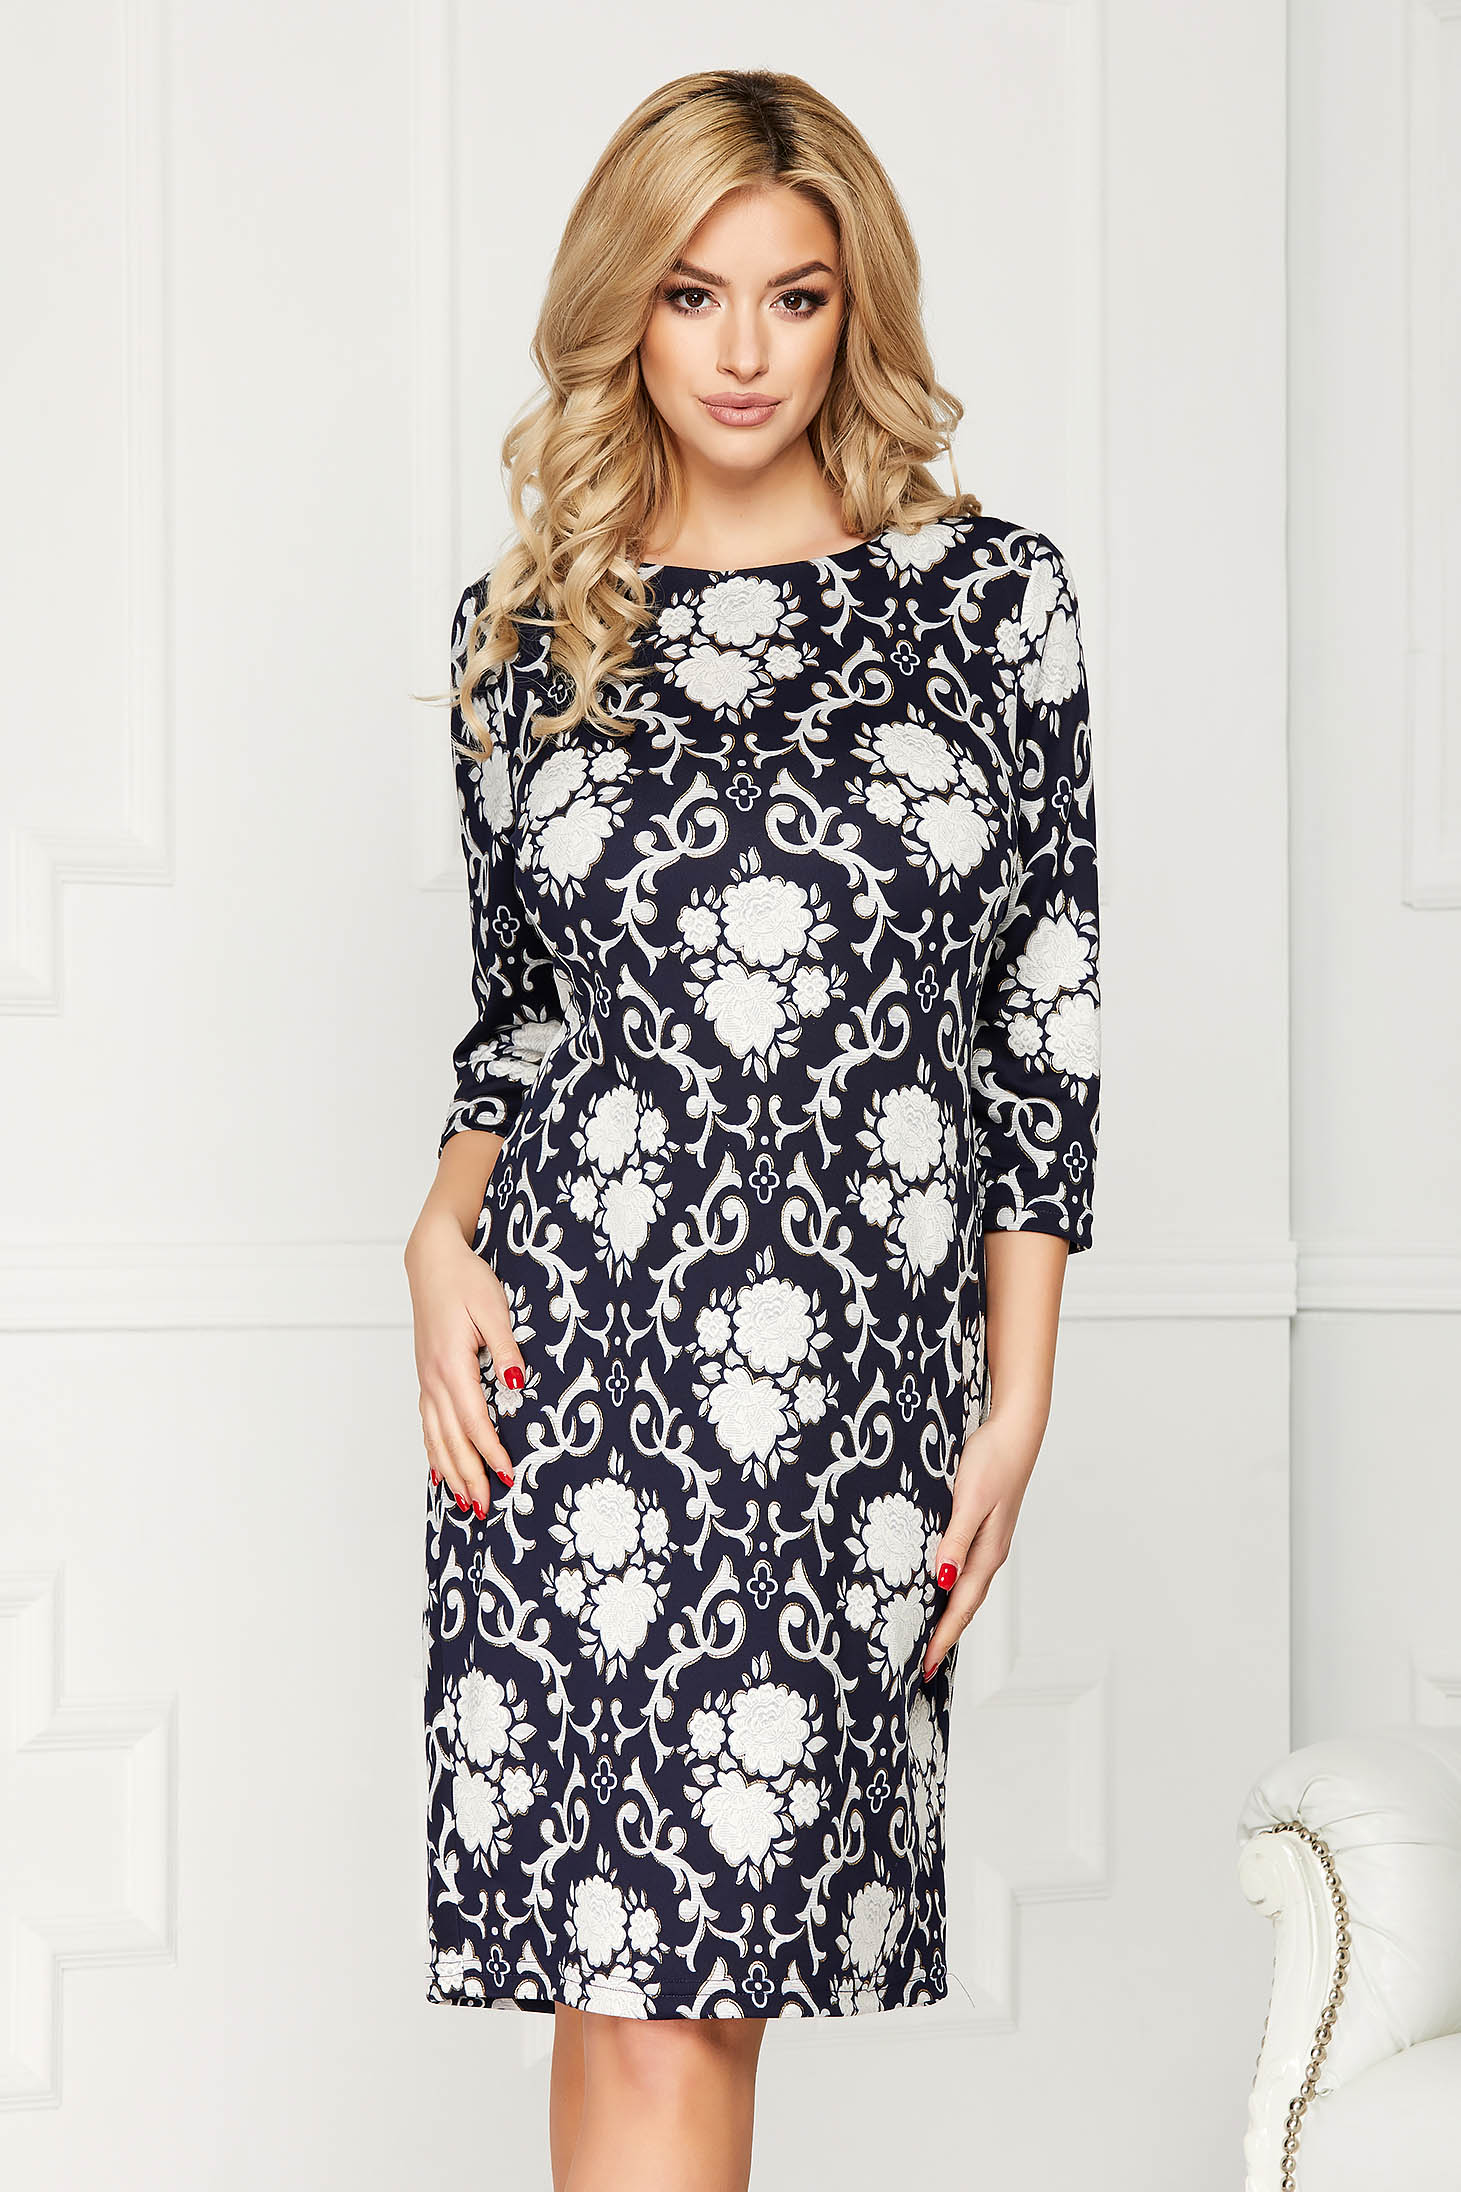 Darkblue dress elegant midi pencil cotton with floral prints long sleeve